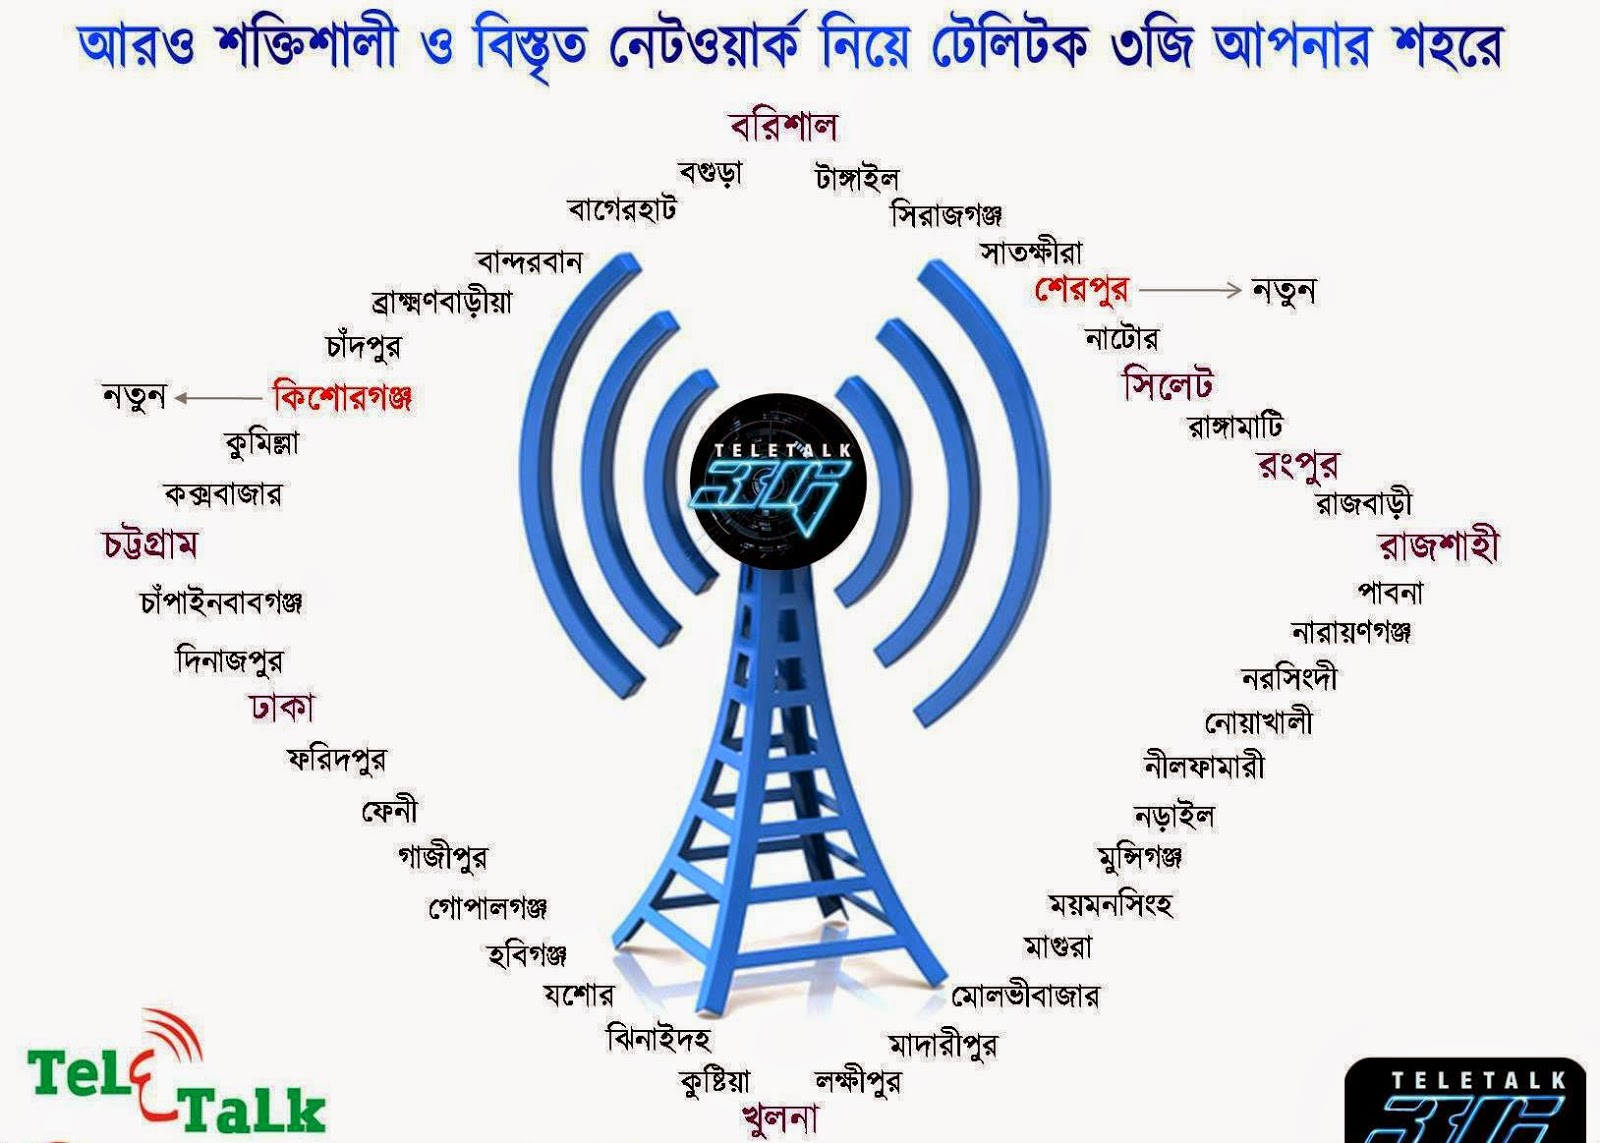 Teletalk-3G-Coverage-Areas-Network-Areas.jpg